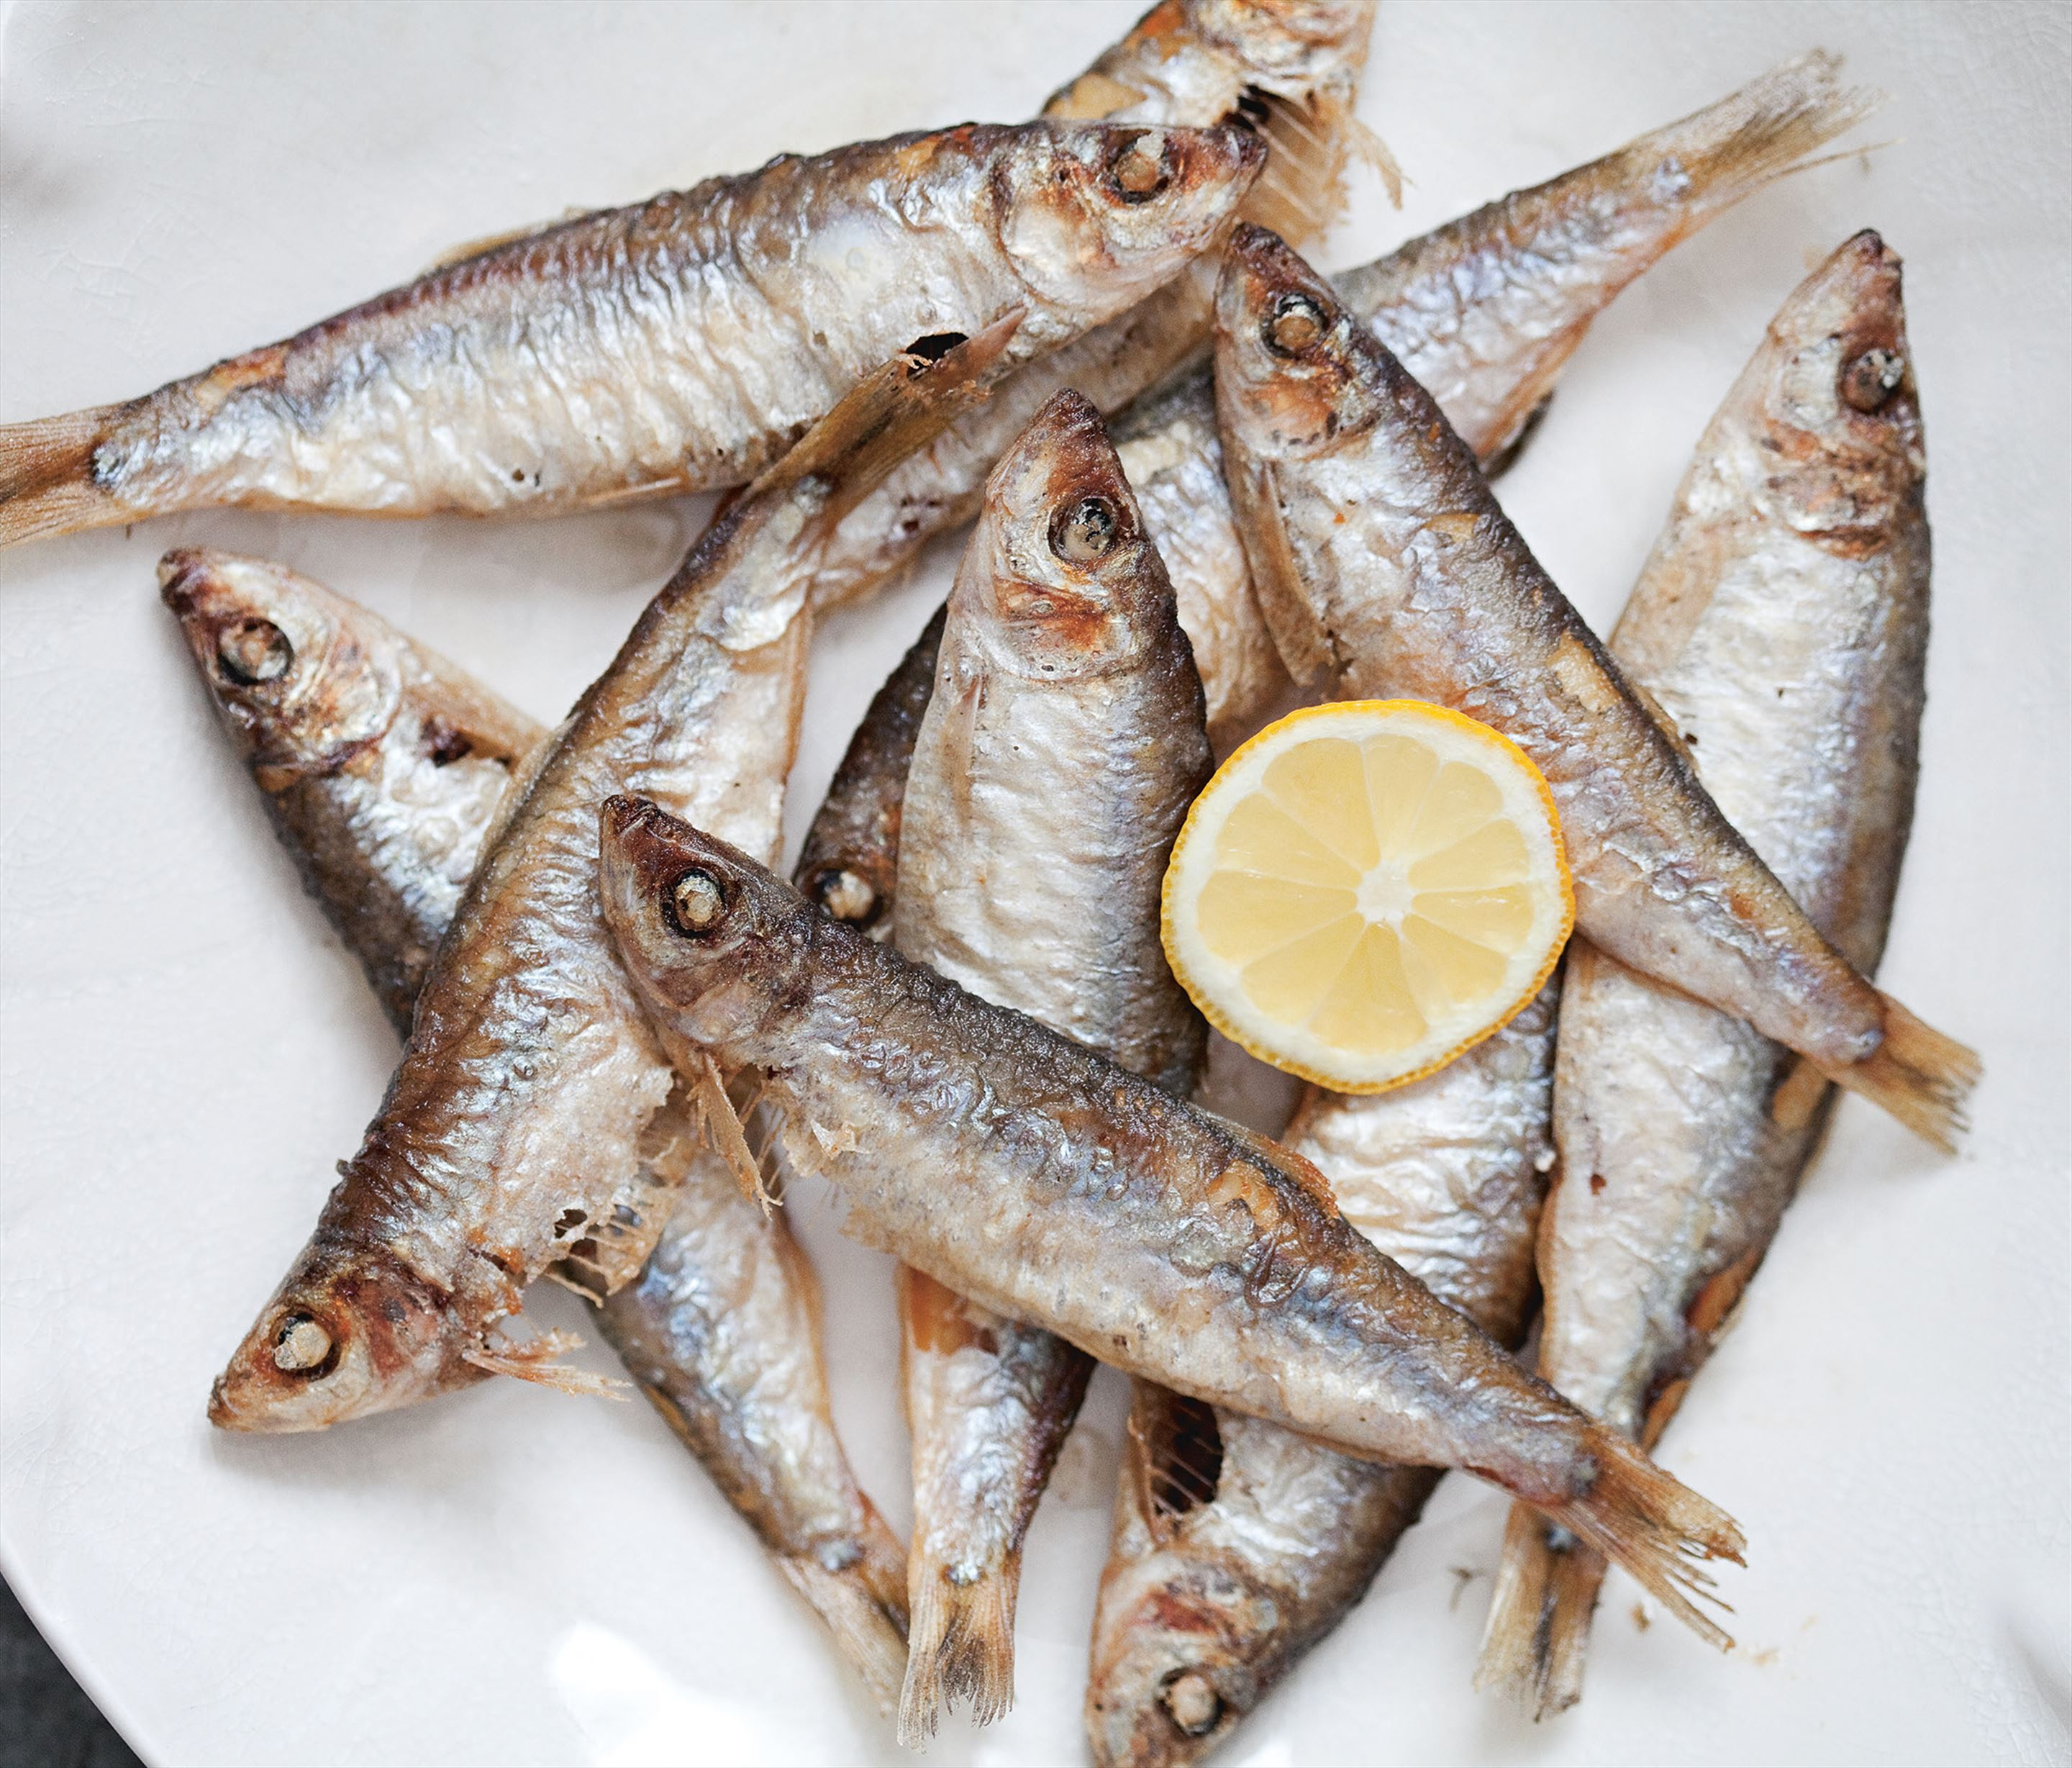 Deep-fried anchovies or sprats